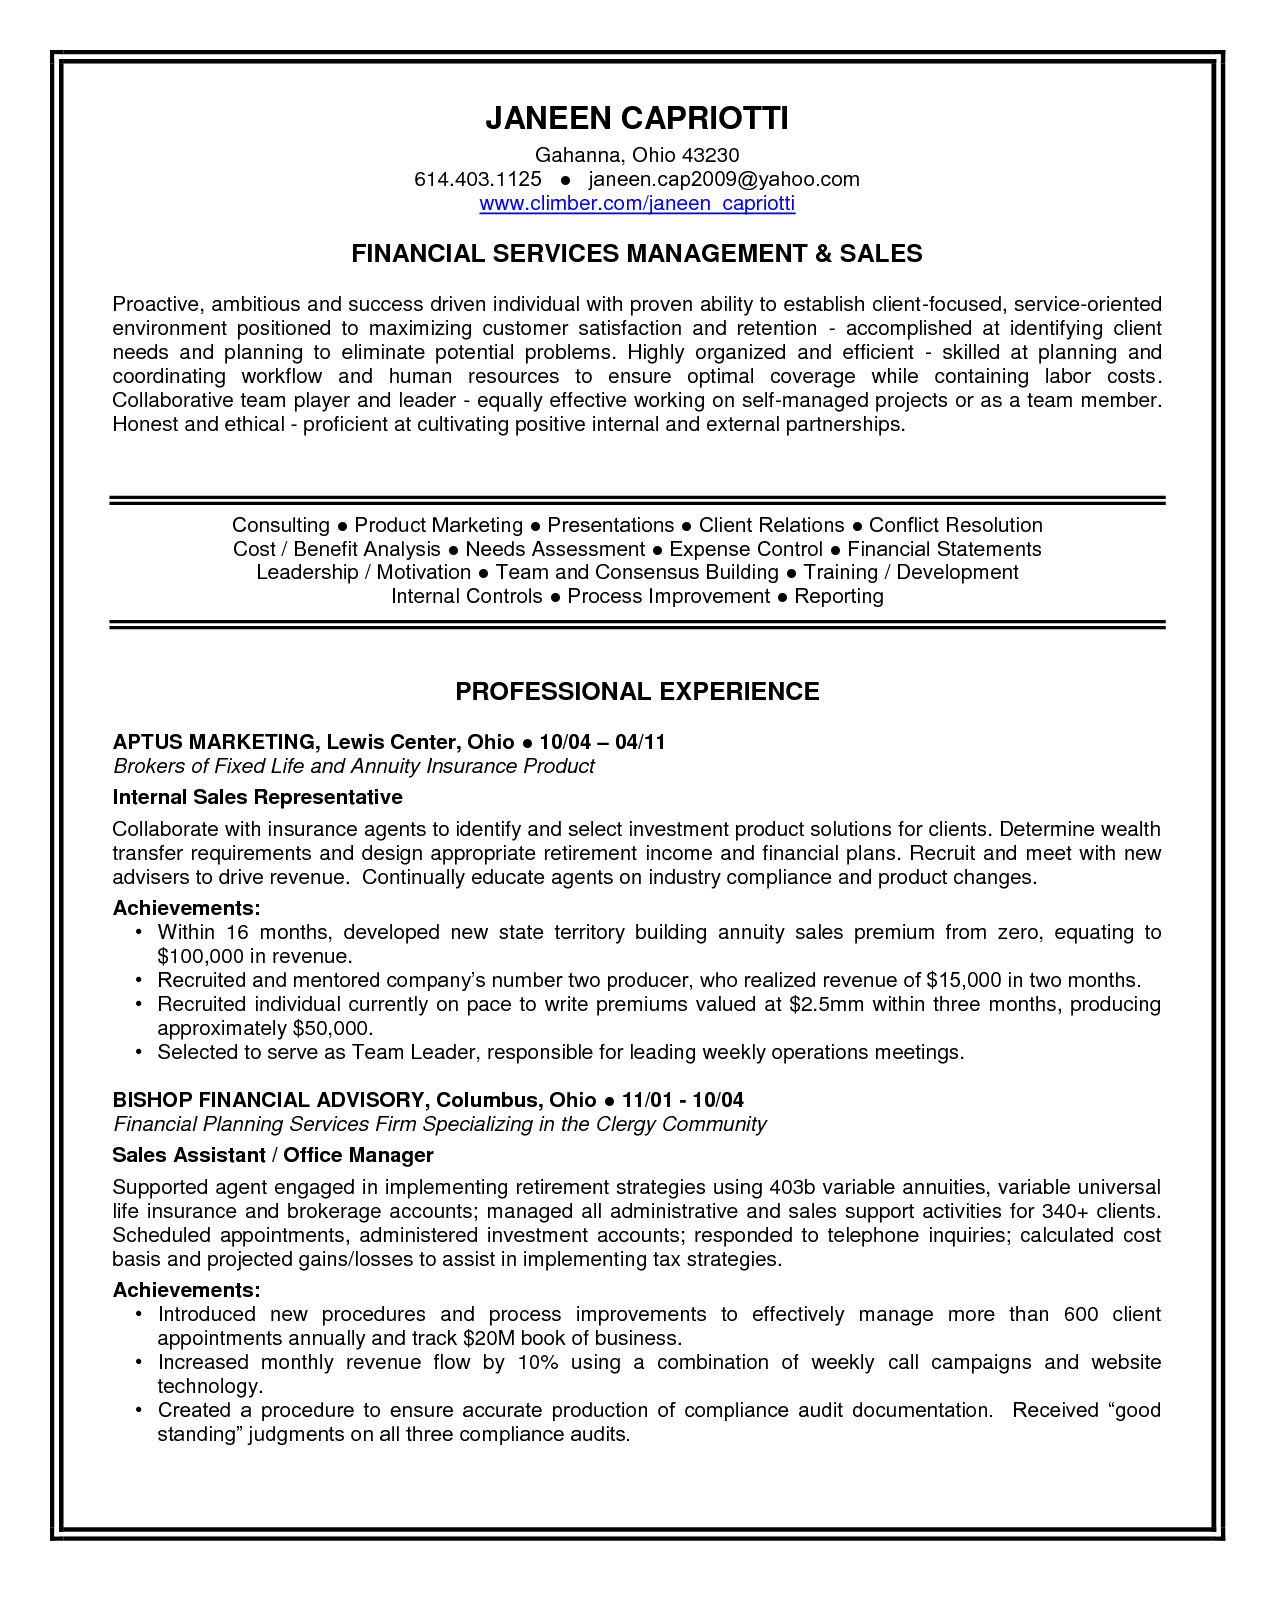 Personal Statement Resume Examples Best Template Collection